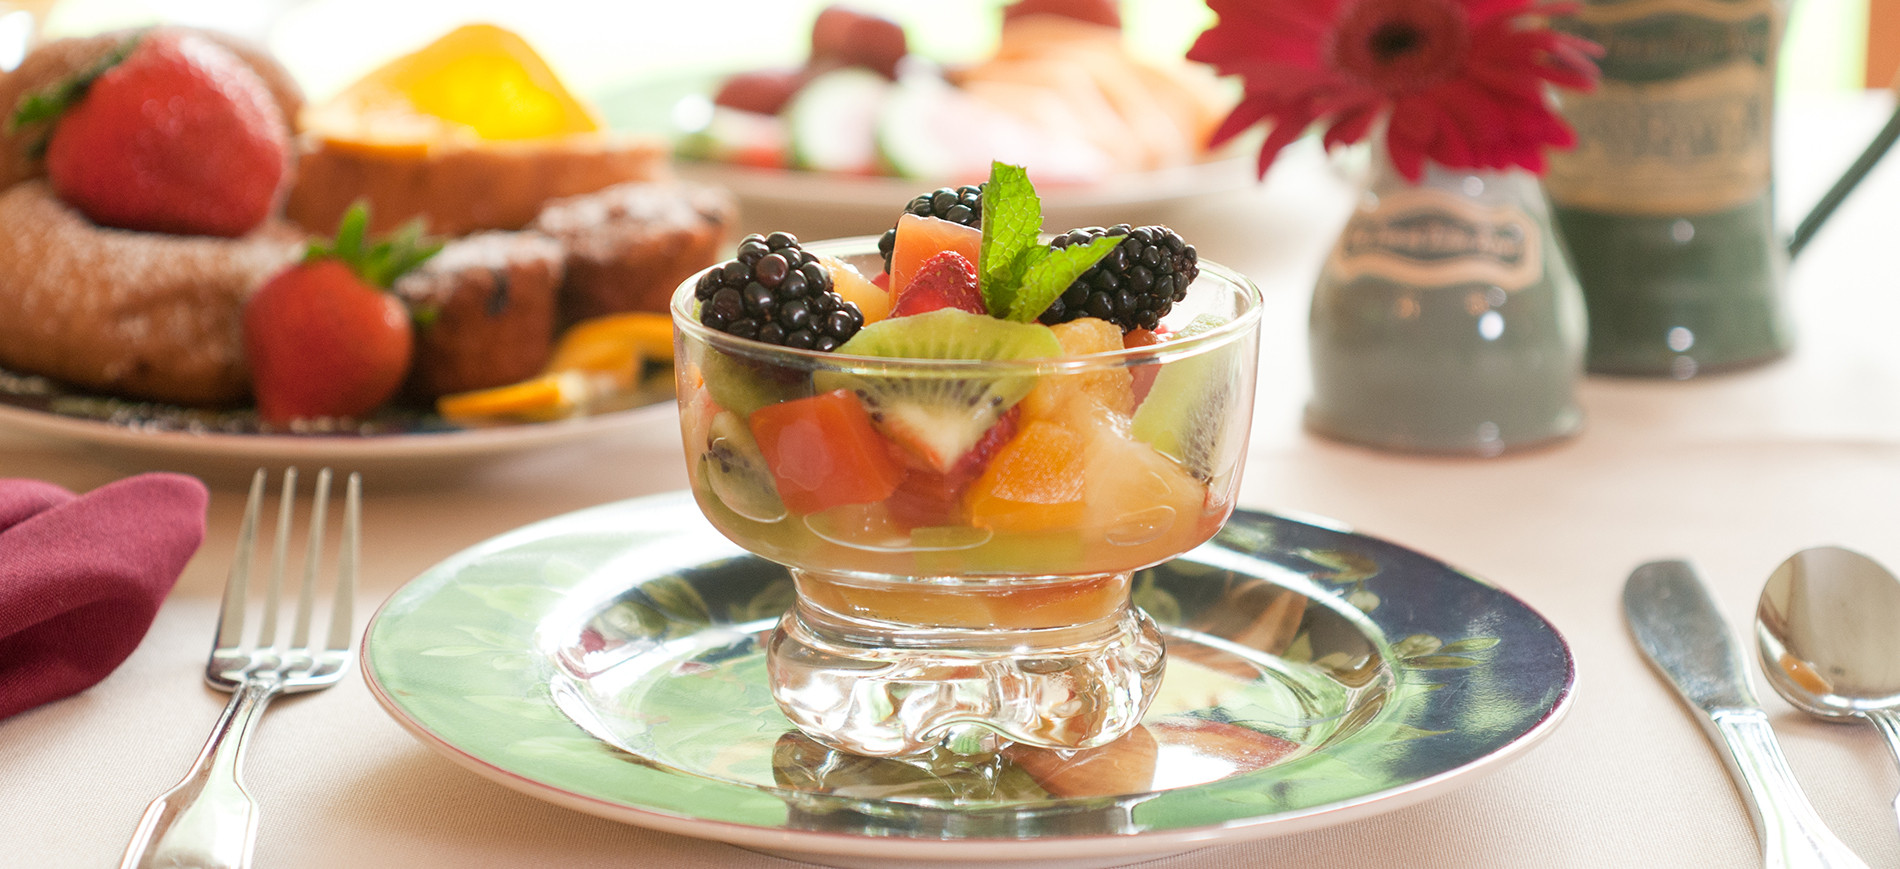 Fruit cup in glass bowl on plate